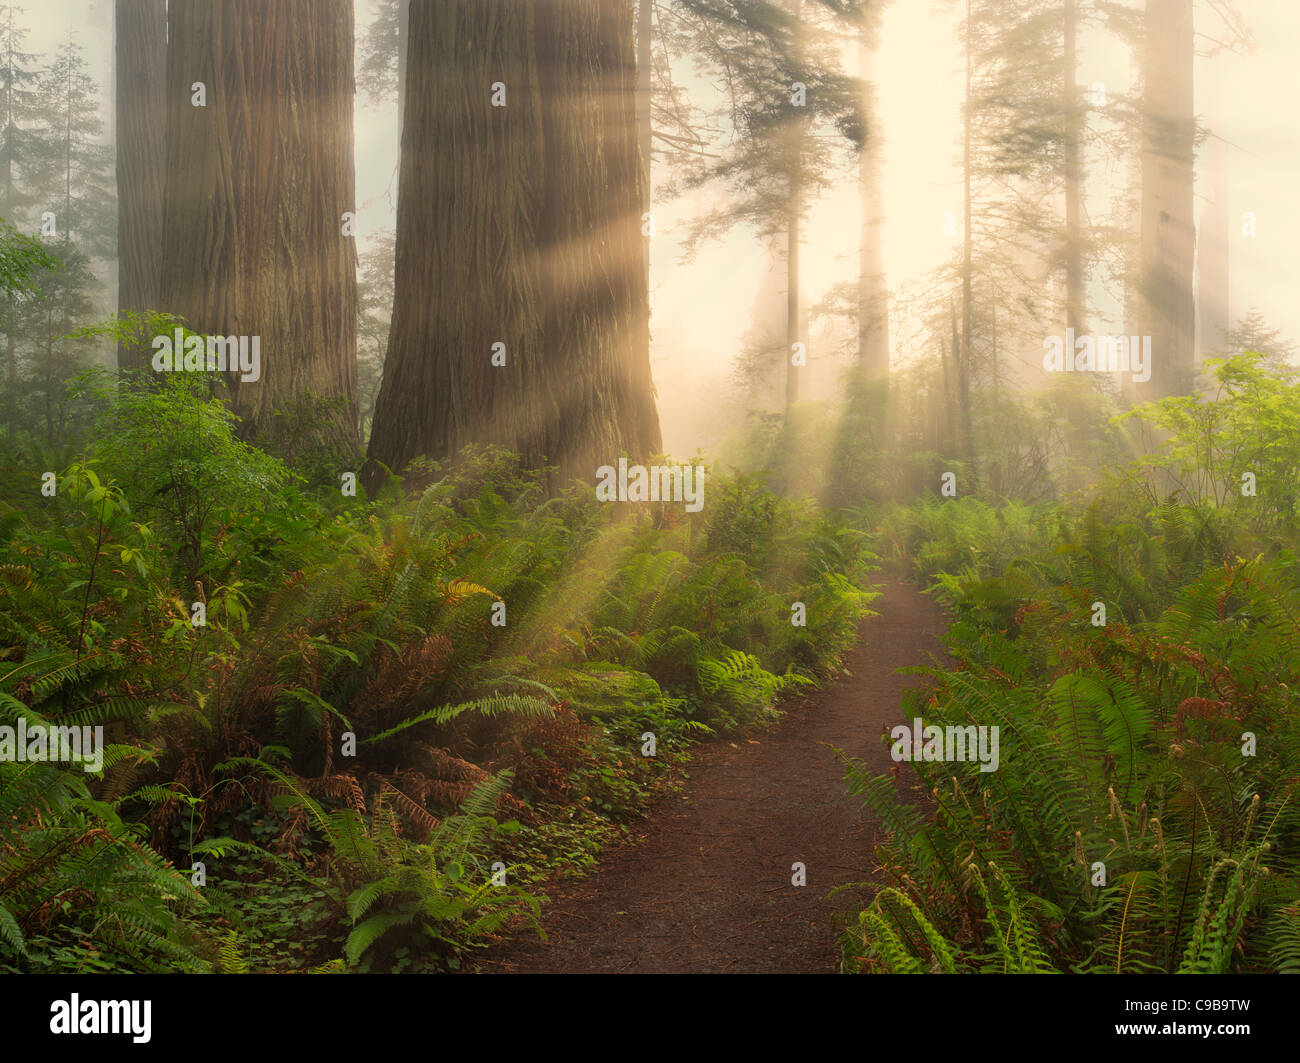 Redwood trees and path in Lady Bird Johnson Grove. Redwood National and State Parks, California - Stock Image